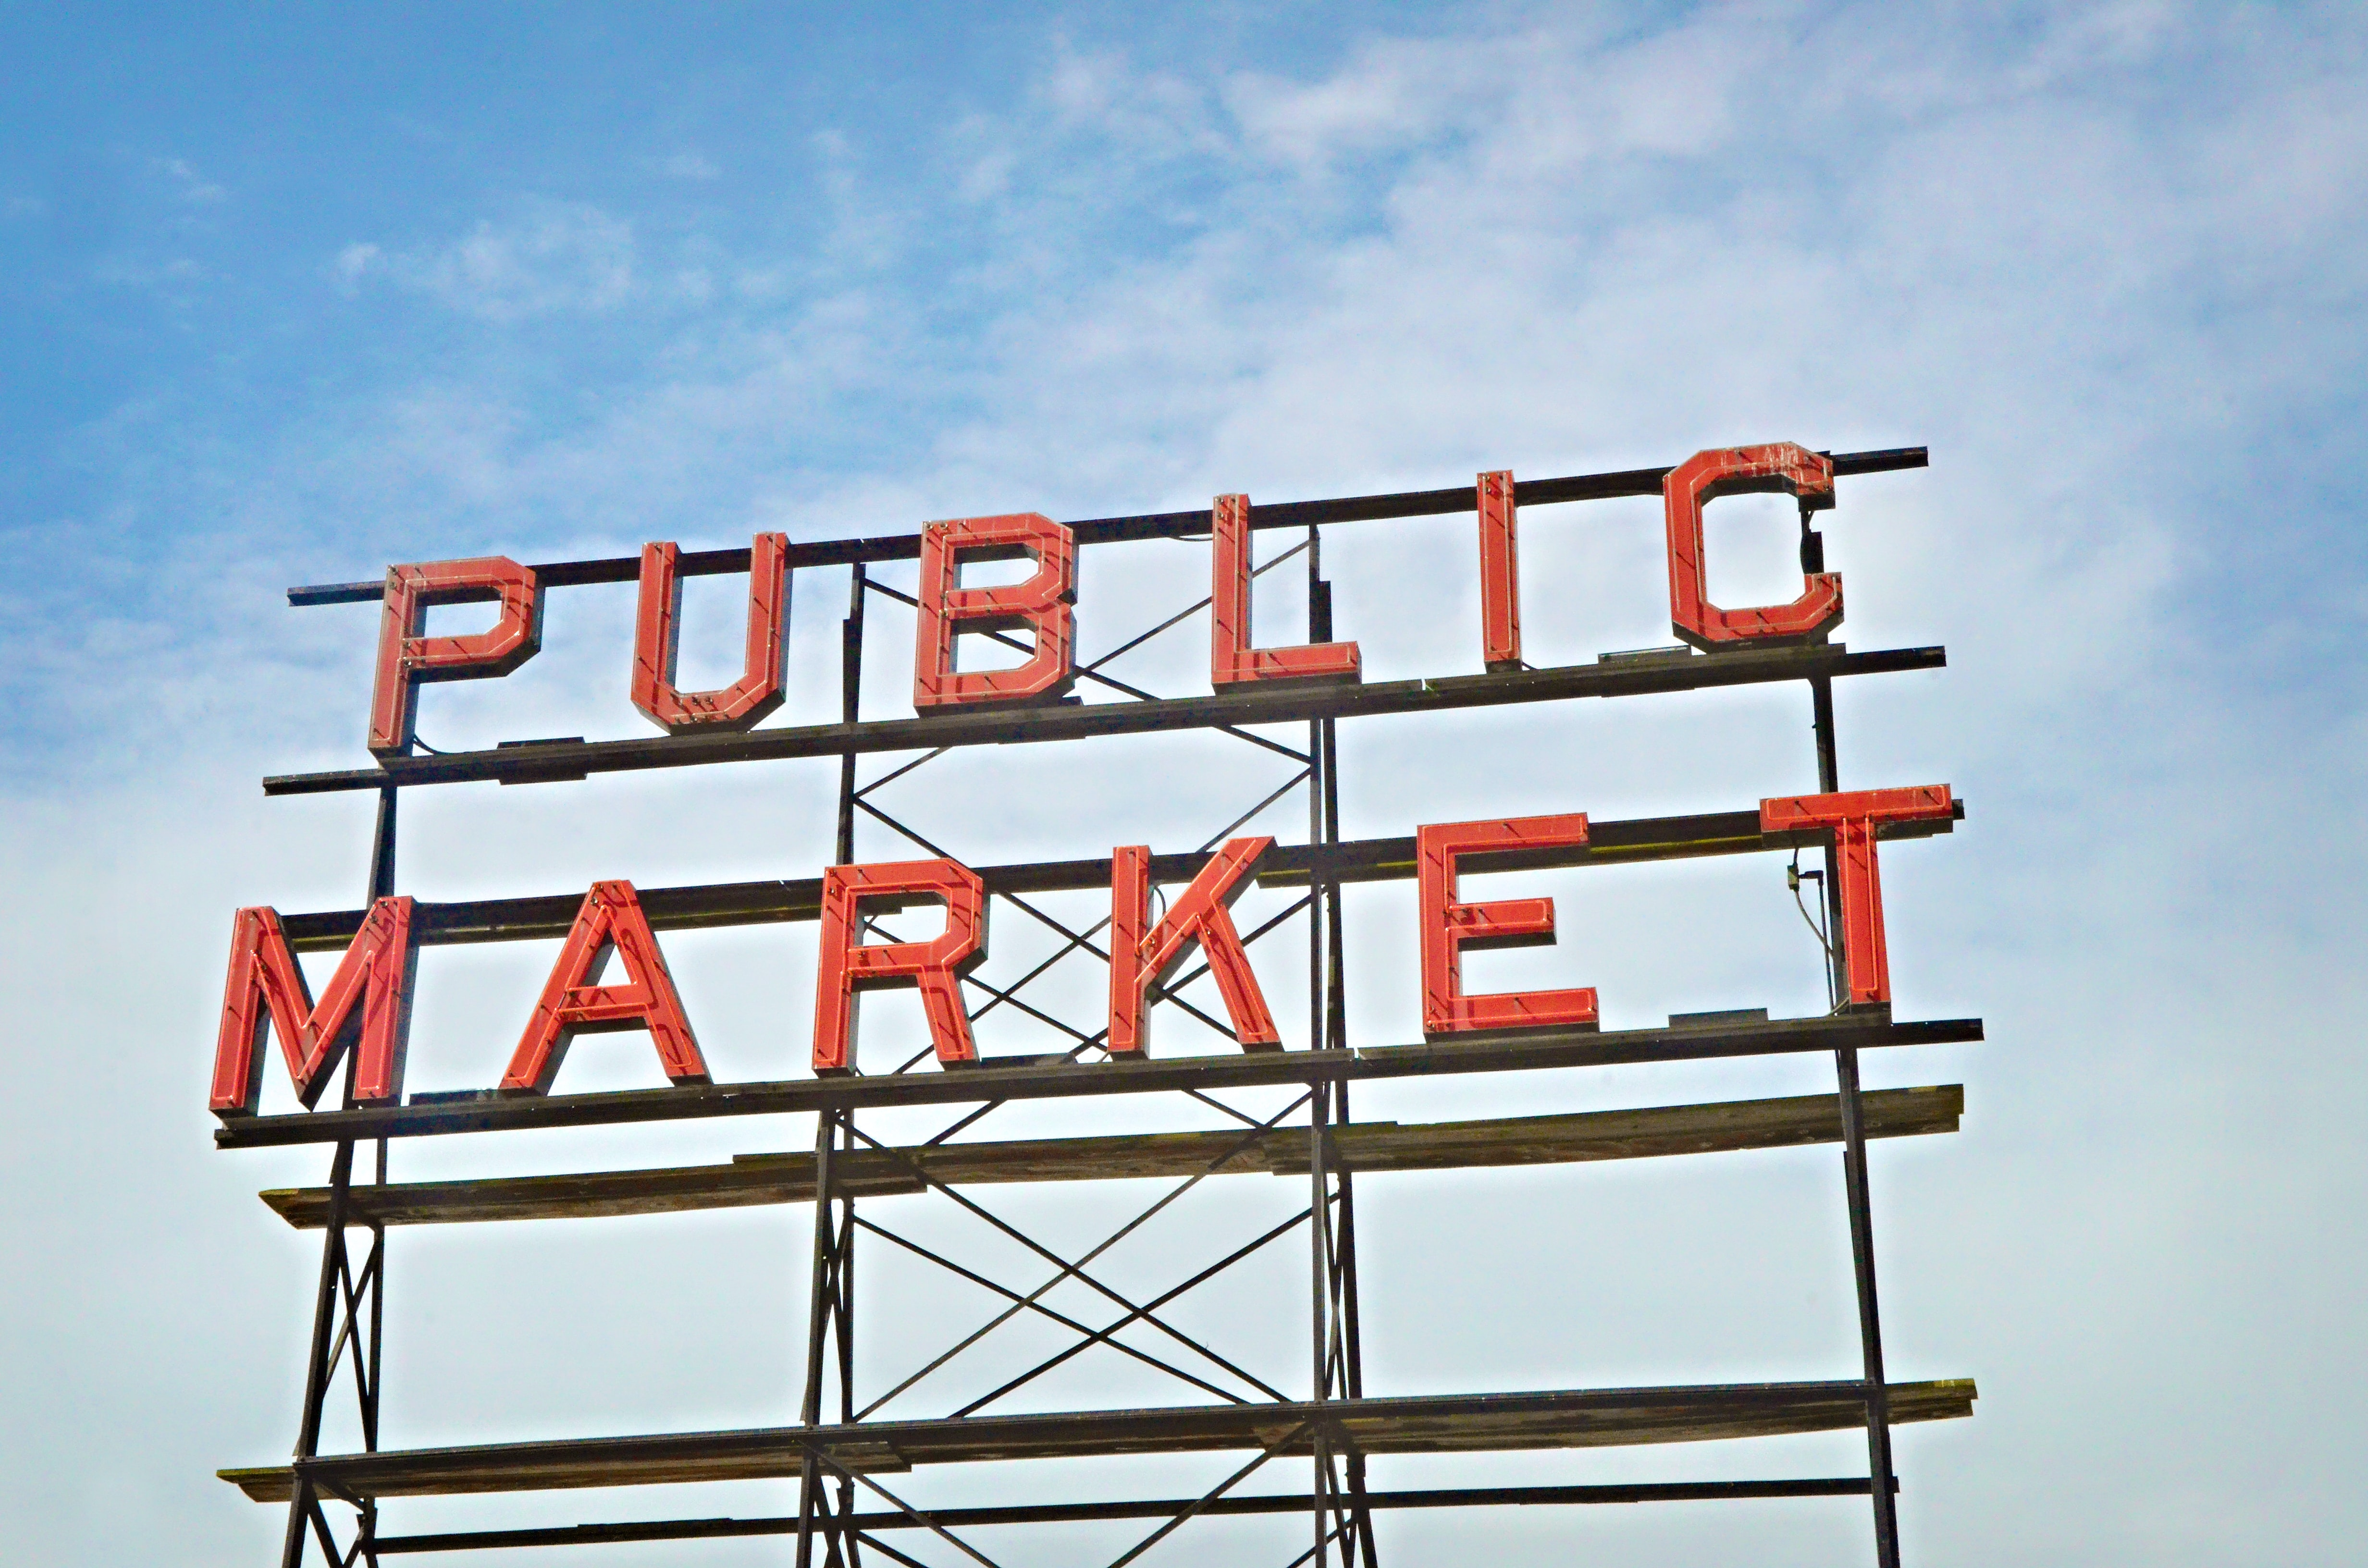 photo of red and black Public Market signage